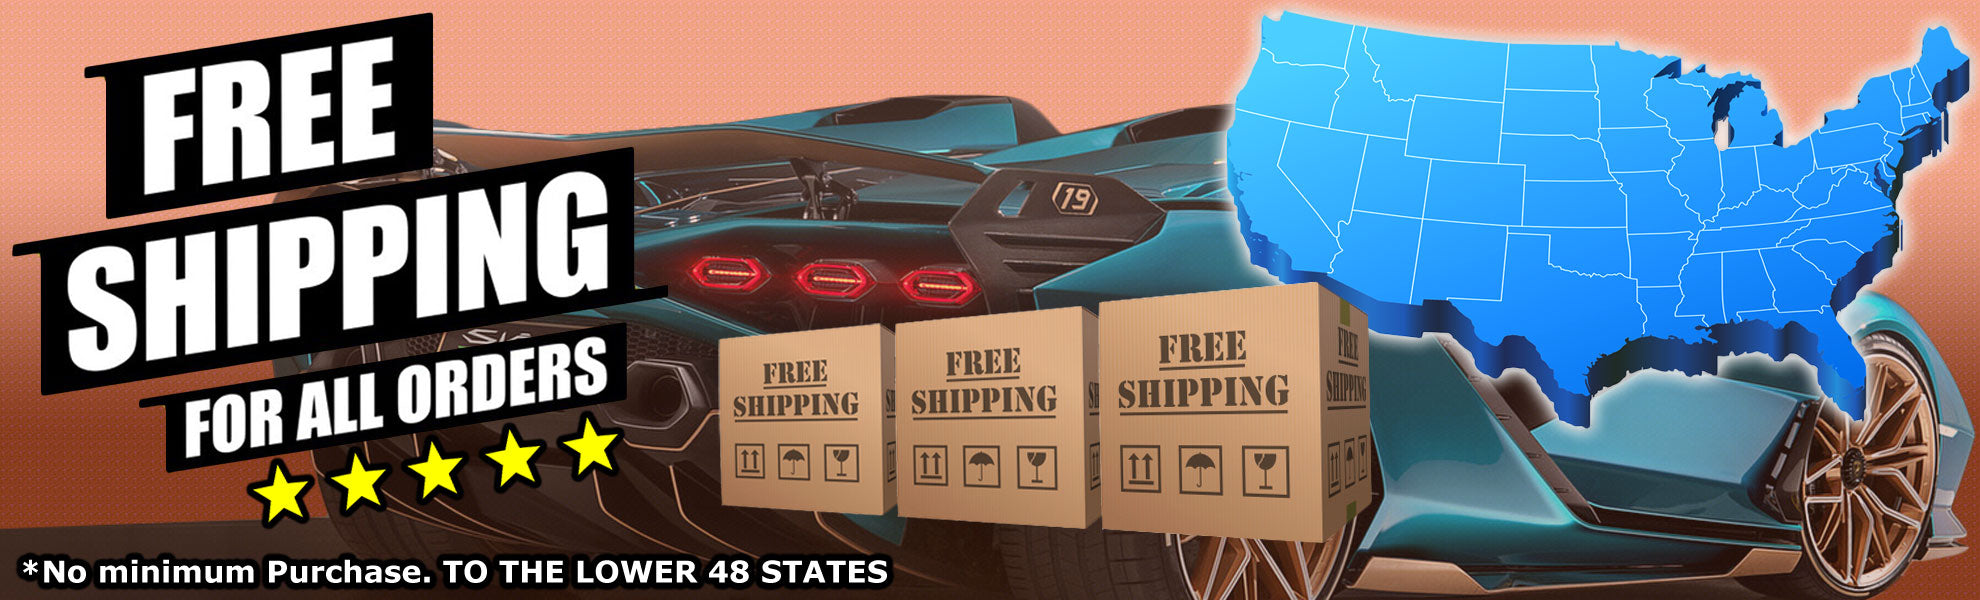 Build Fast Car FREE SHIPPING for ALL ORDERS